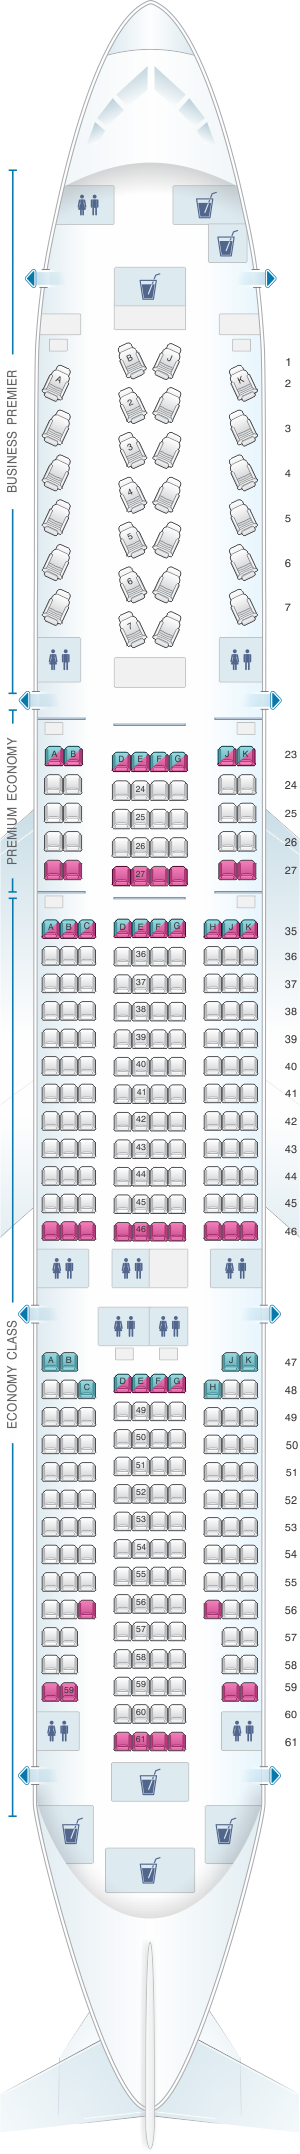 Seat map for Air New Zealand Boeing B777 200